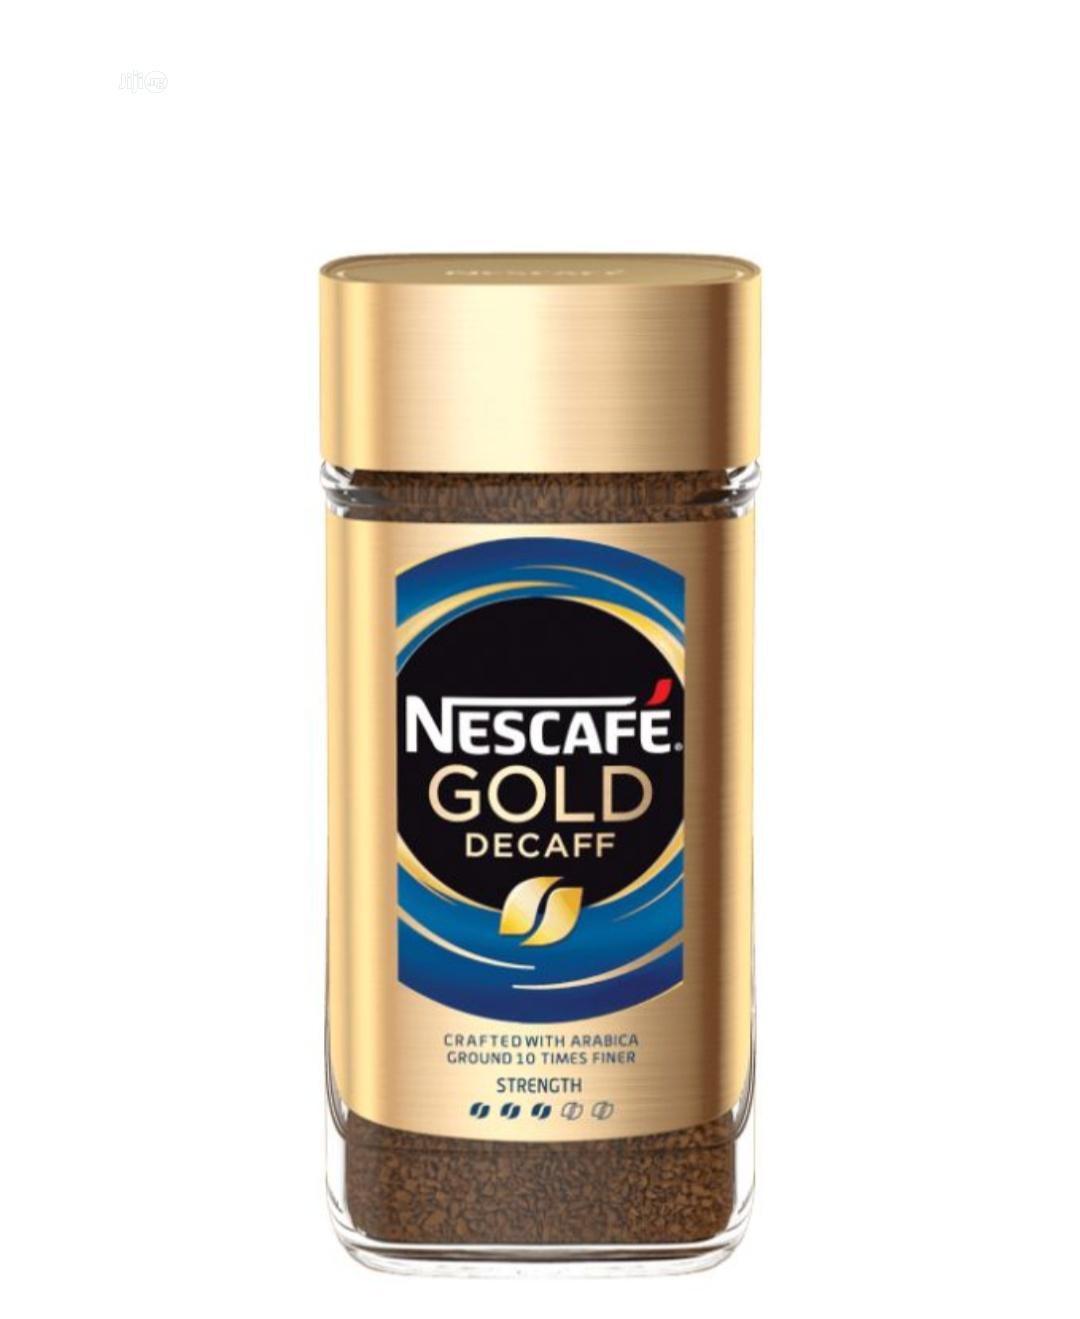 Nescafe Gold Decaff